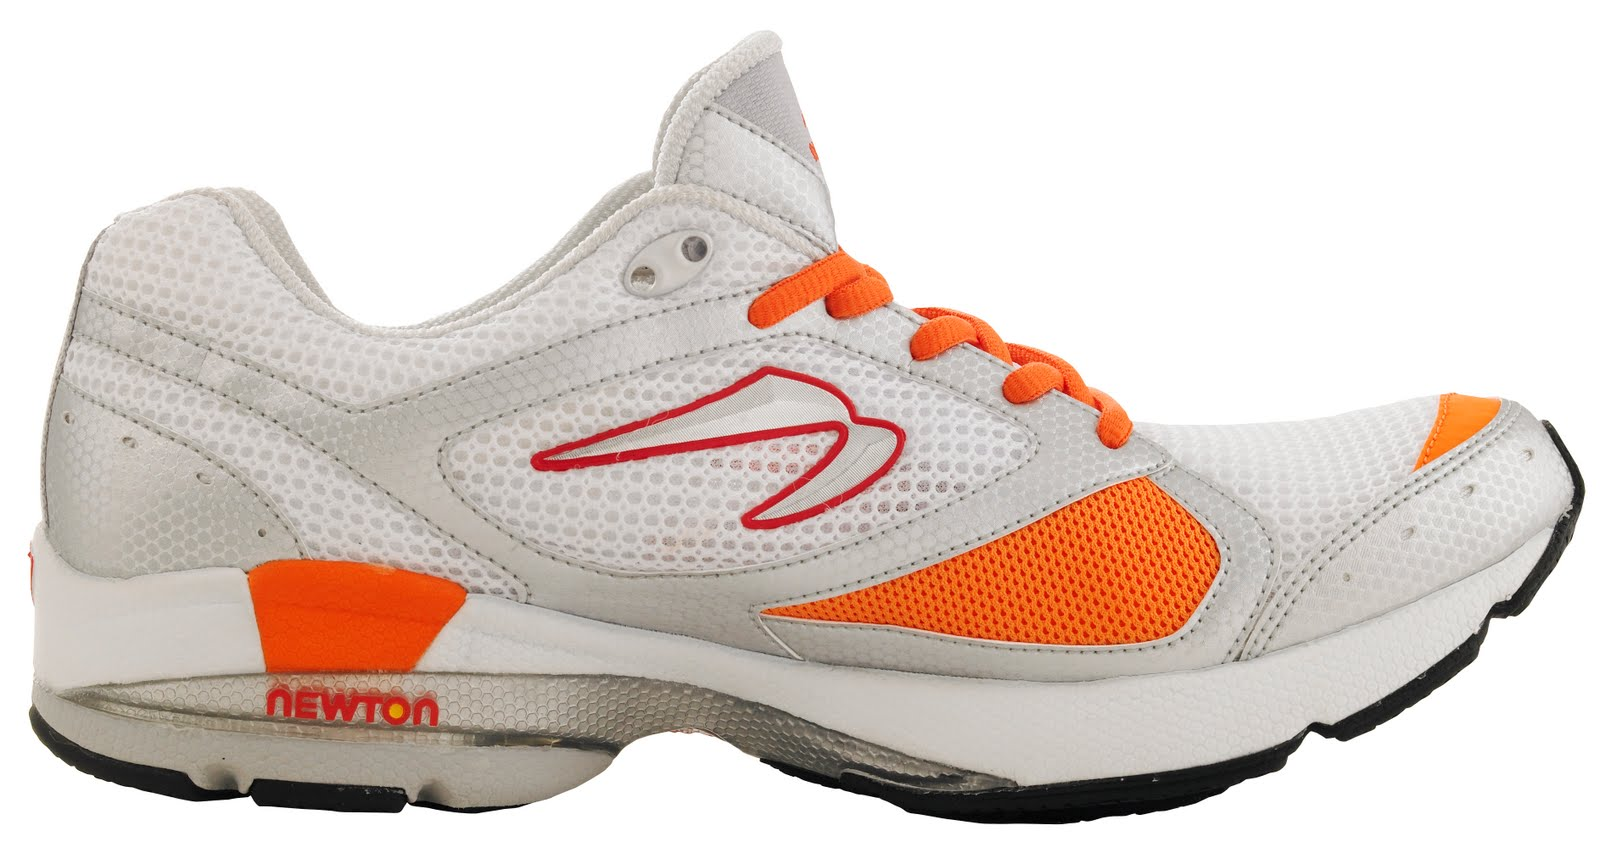 Running Shoes For Seniors Pubmed